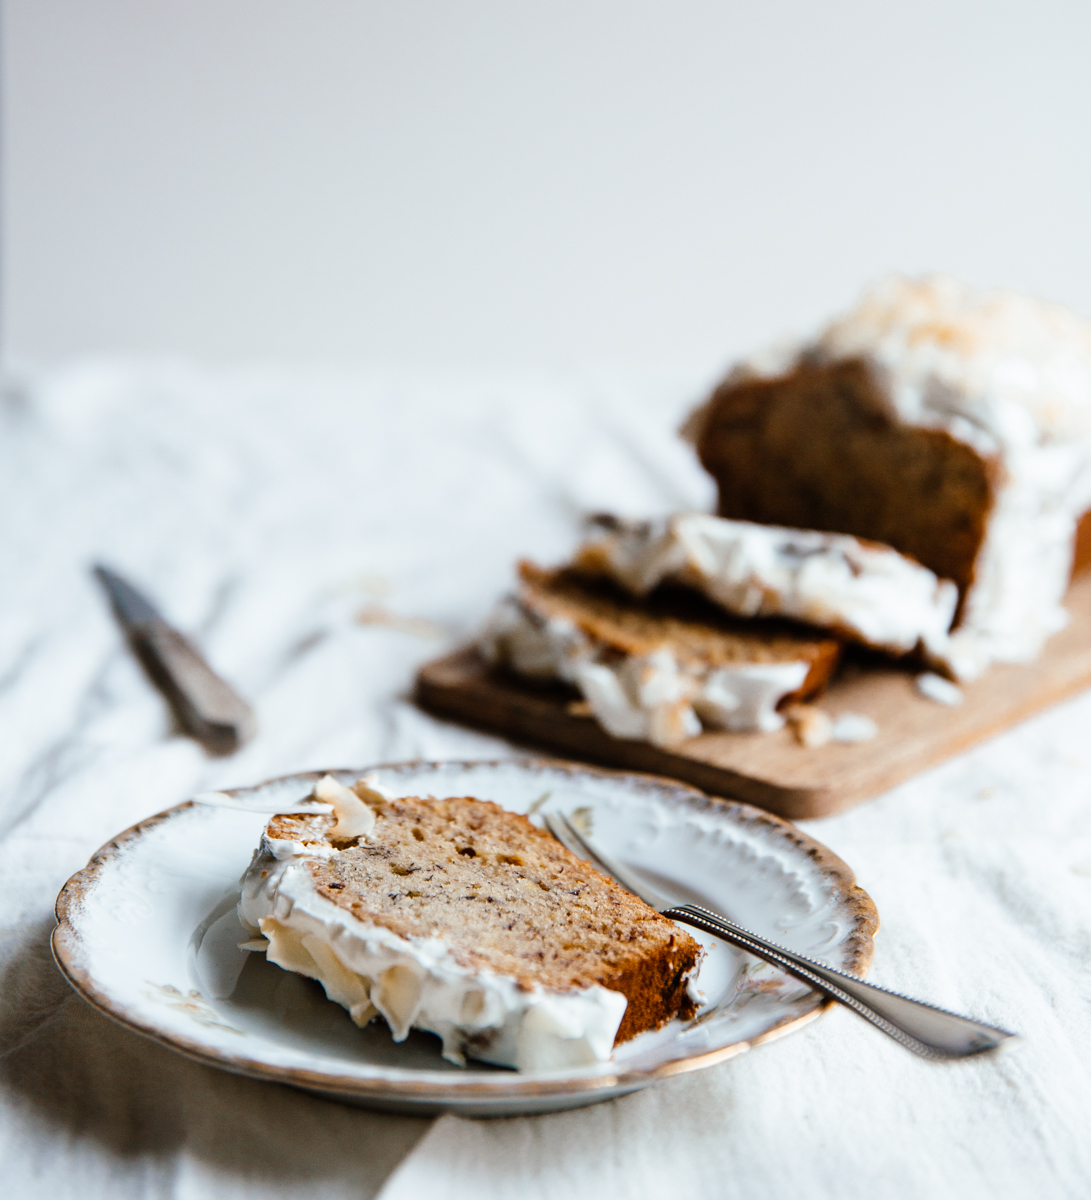 Cardamom & cocoa nib banana bread with coconut frosting